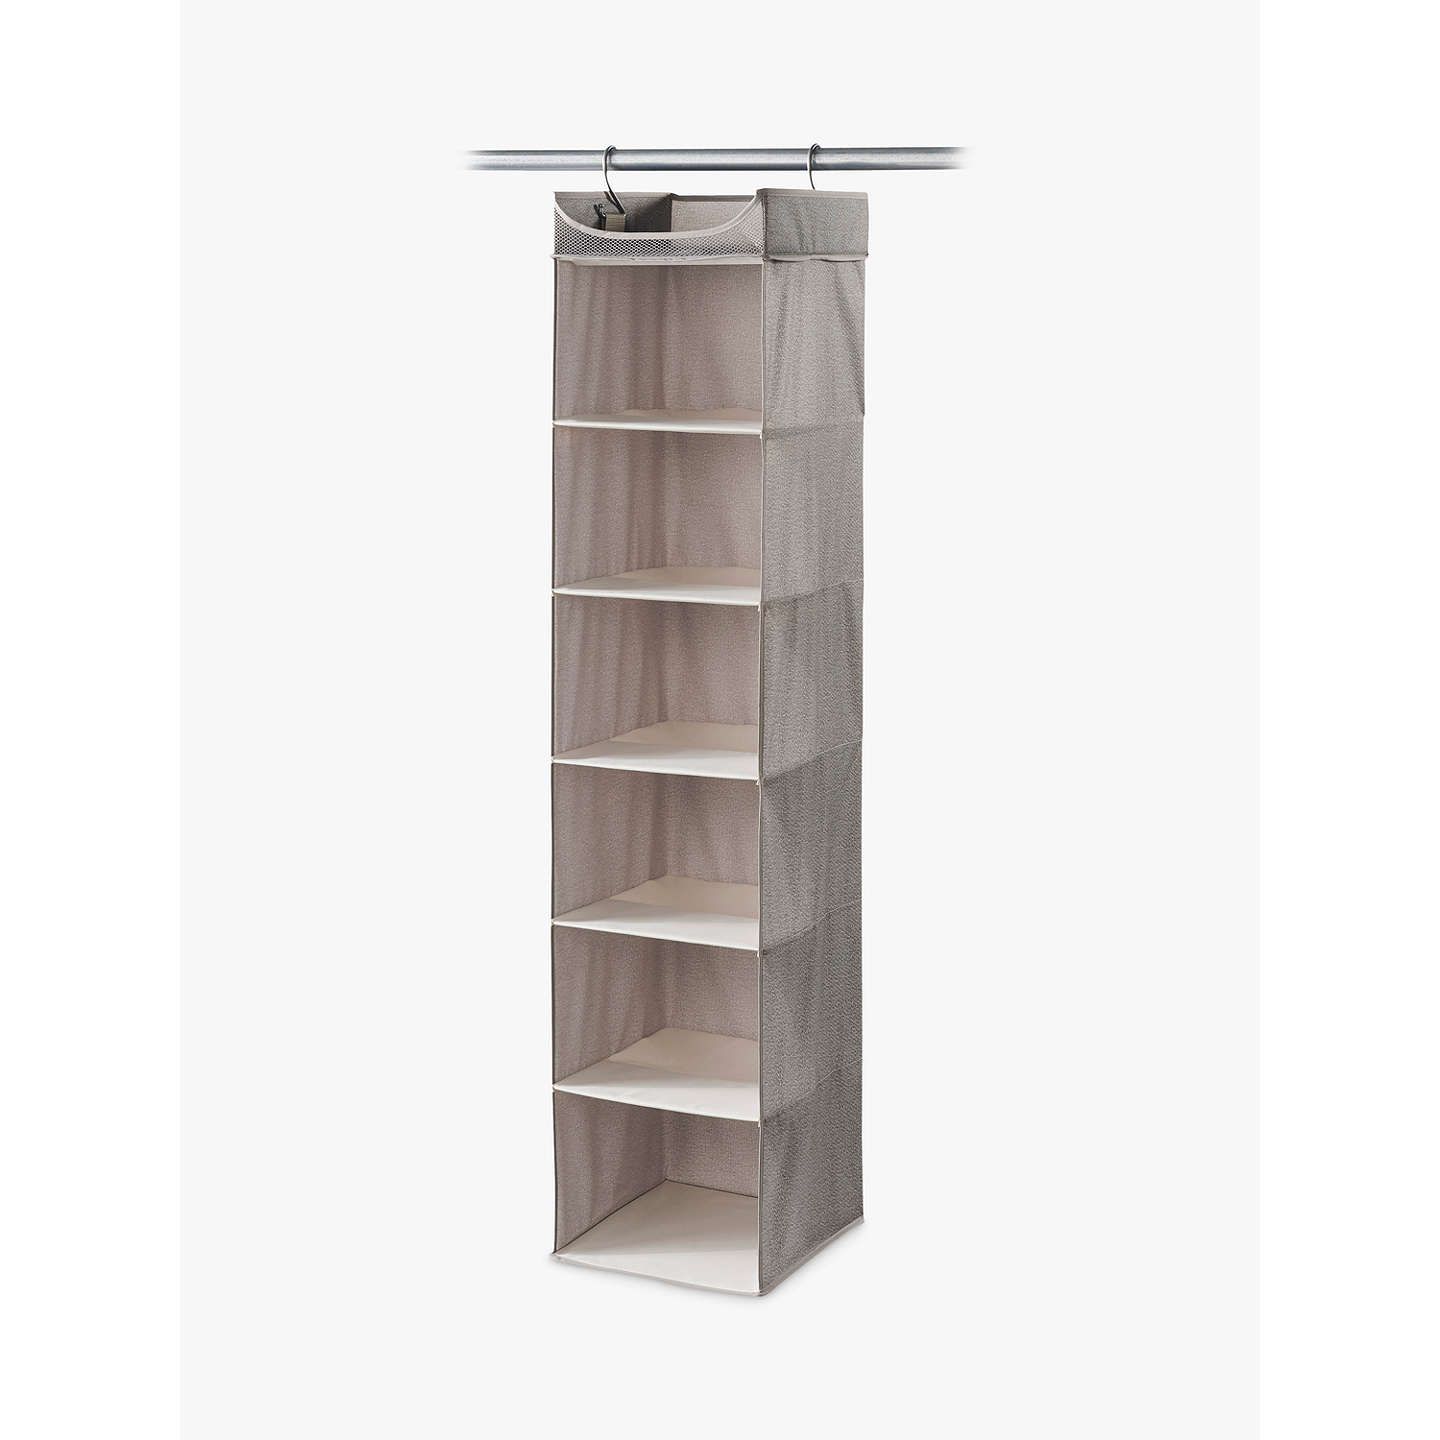 hang a here hanging with description shelf questions image fasteners how home no shelving enter visible can i